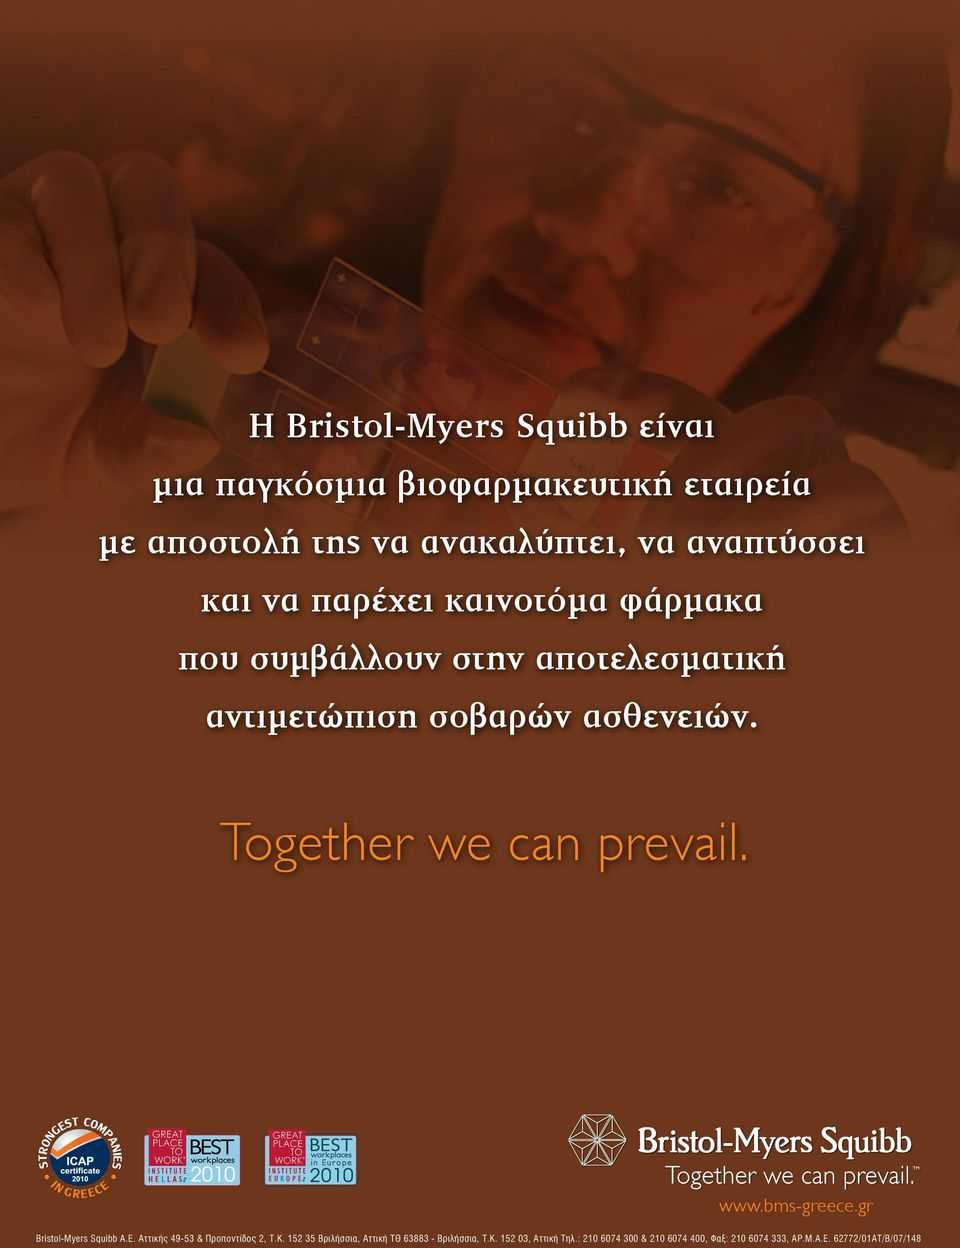 Together we can prevail. www.bms-greece.gr Bristol-Myers Squibb A.E. Αττικής 49-53 & Προποντίδος 2, Τ.Κ.